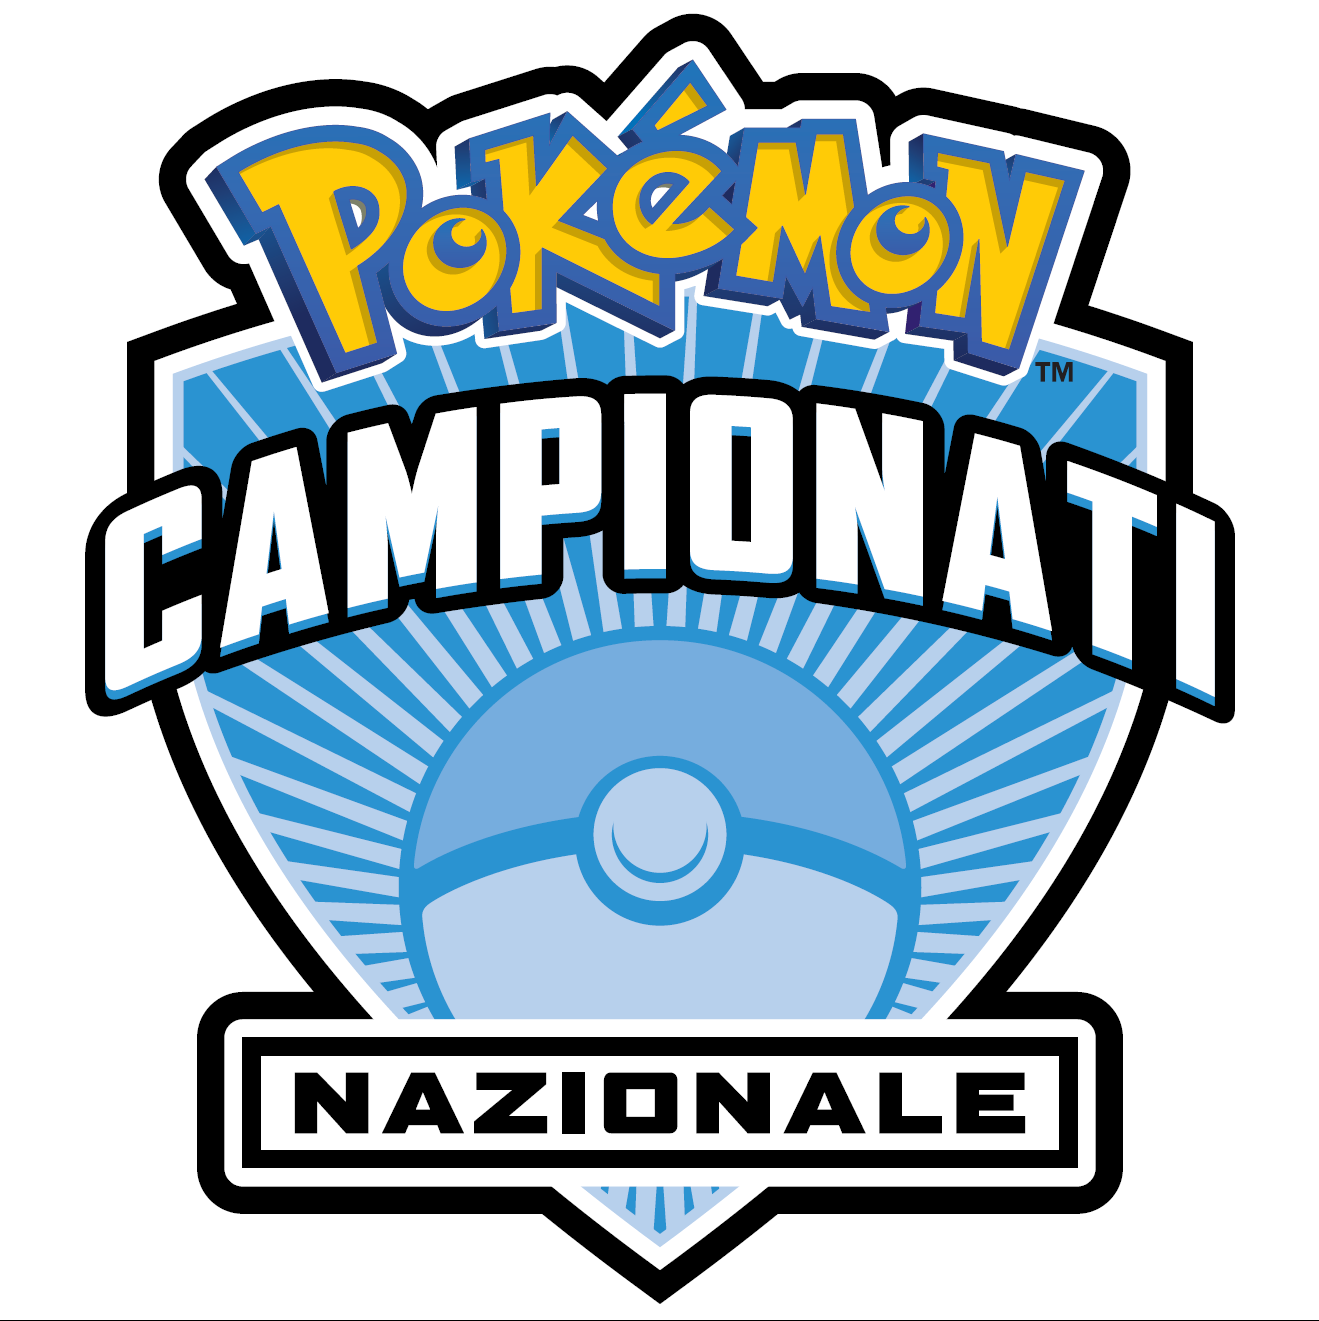 National_Champs_logo_GEN_IT_cmyk